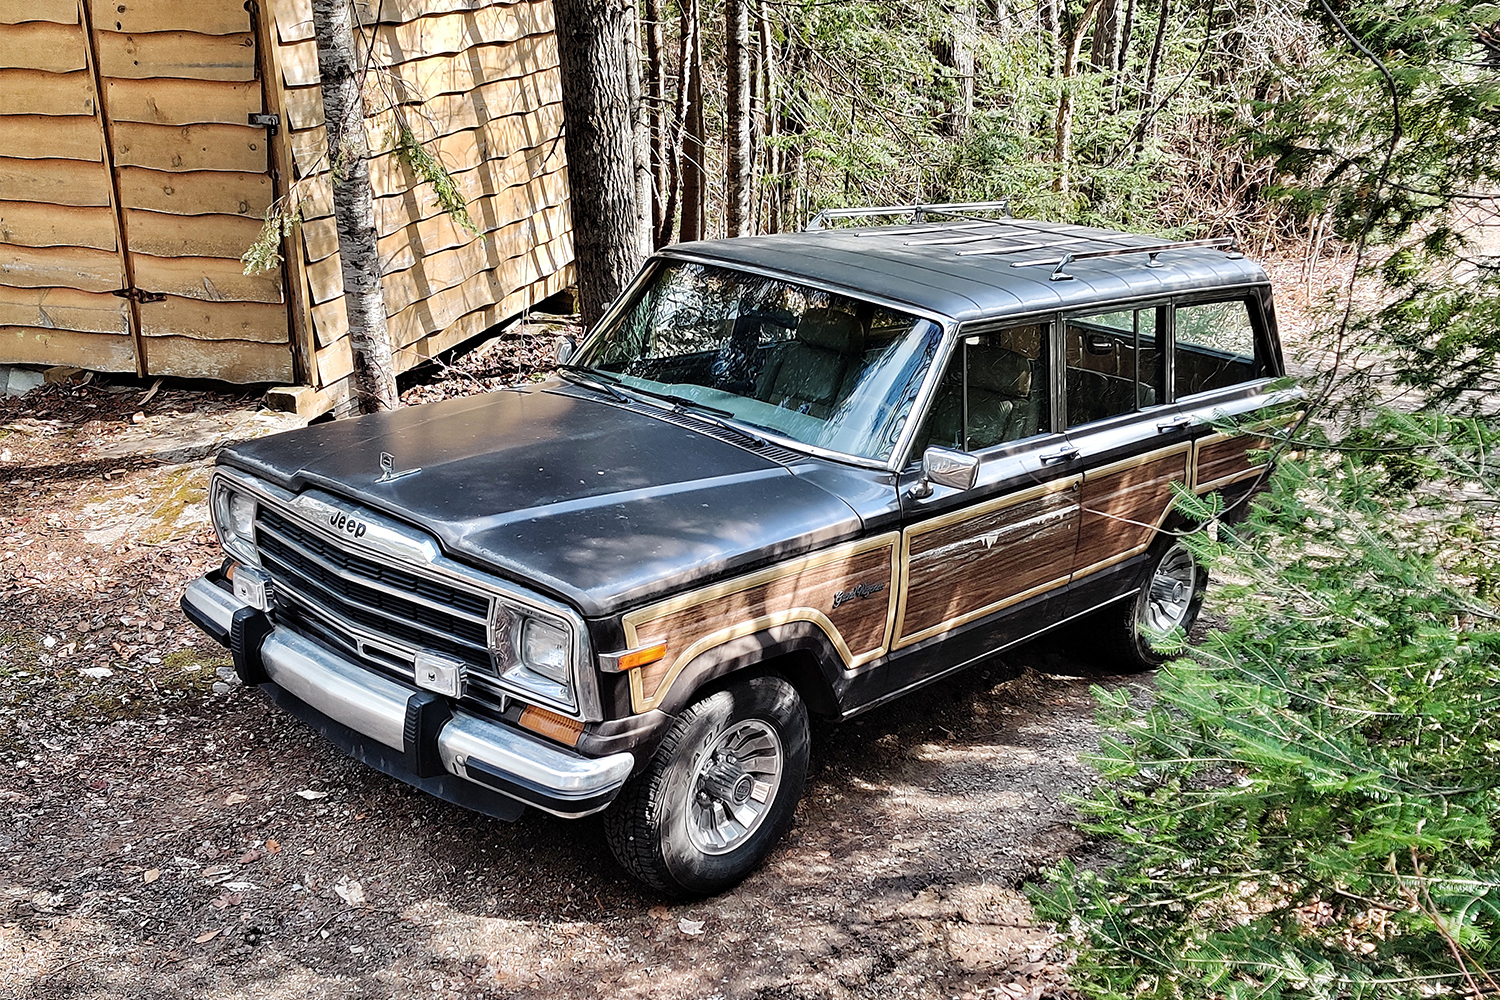 A 1987 Jeep Grand Wagoneer next to a cabin in the woods